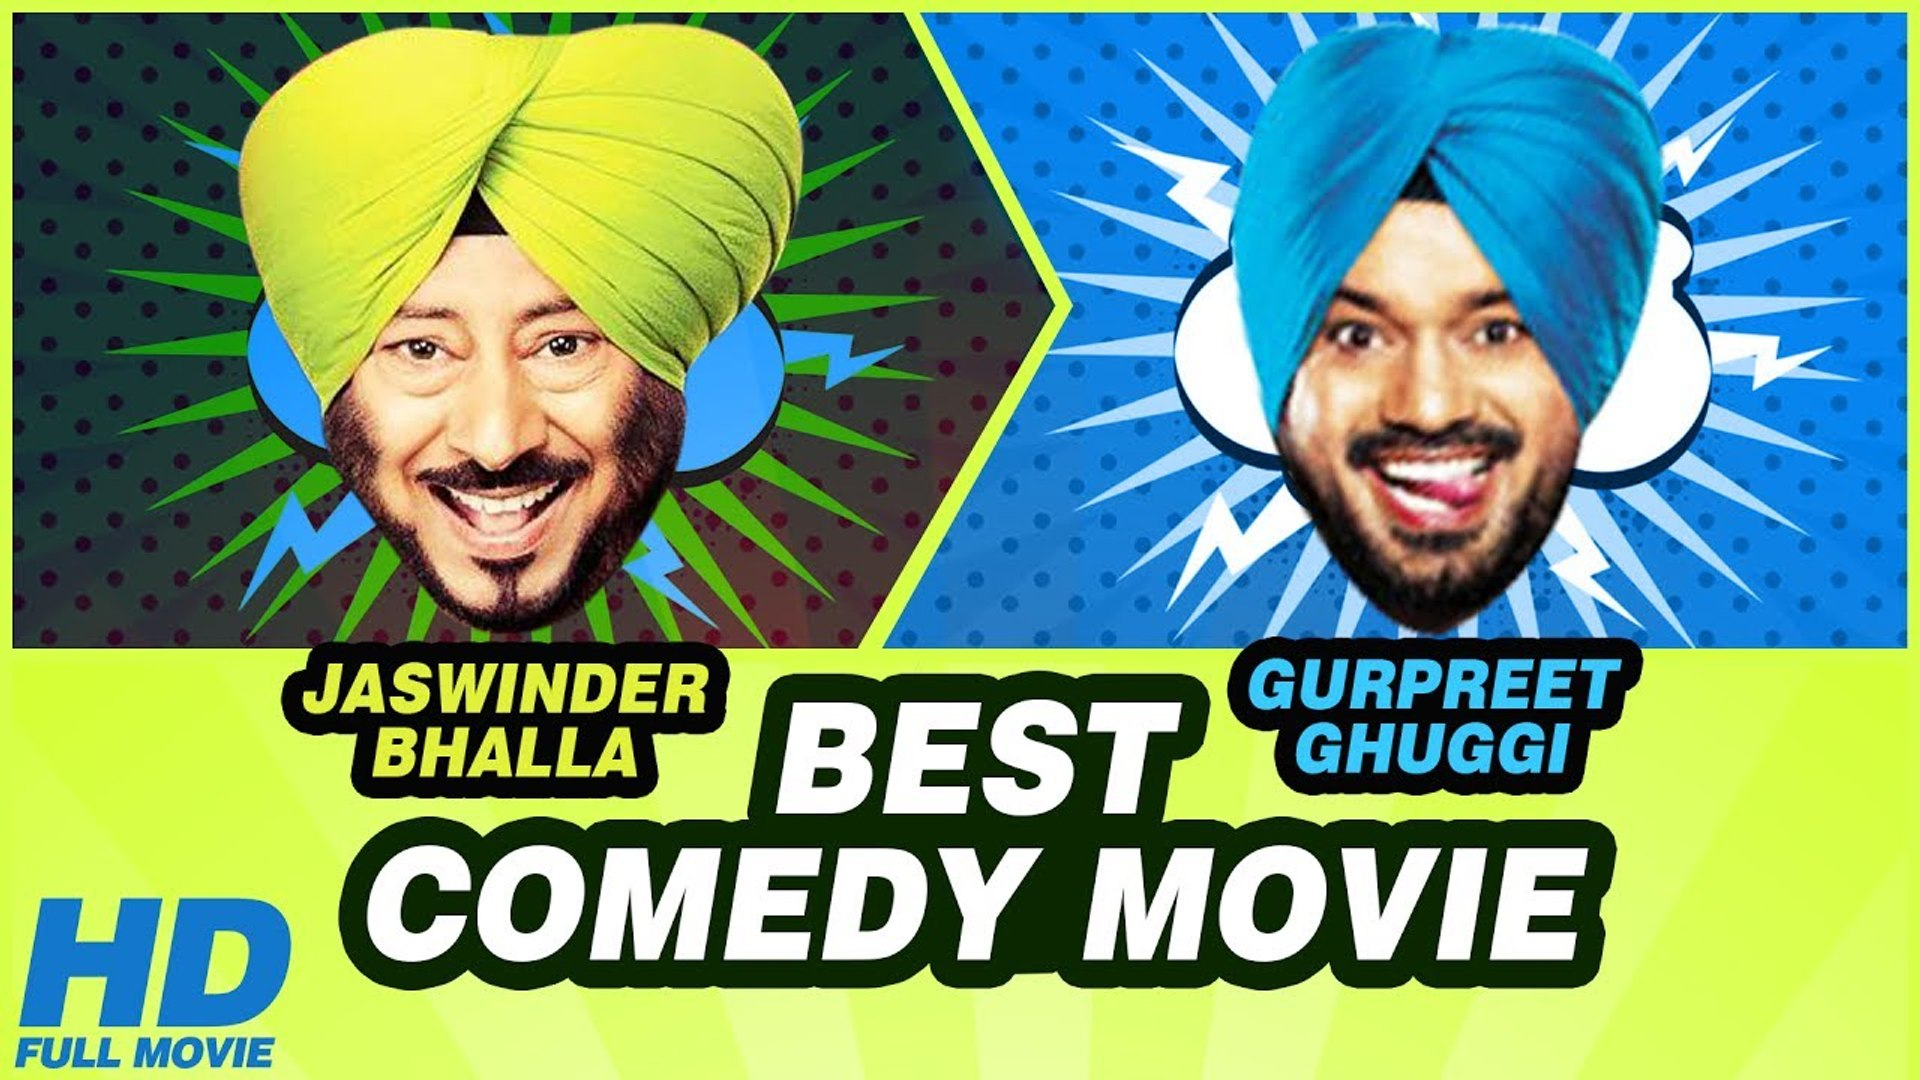 Best Comedy Movie (Full Movie) Part 1 - Jaswinder Bhalla, Gurpreet Ghuggi | Latest Punjabi Movie 201